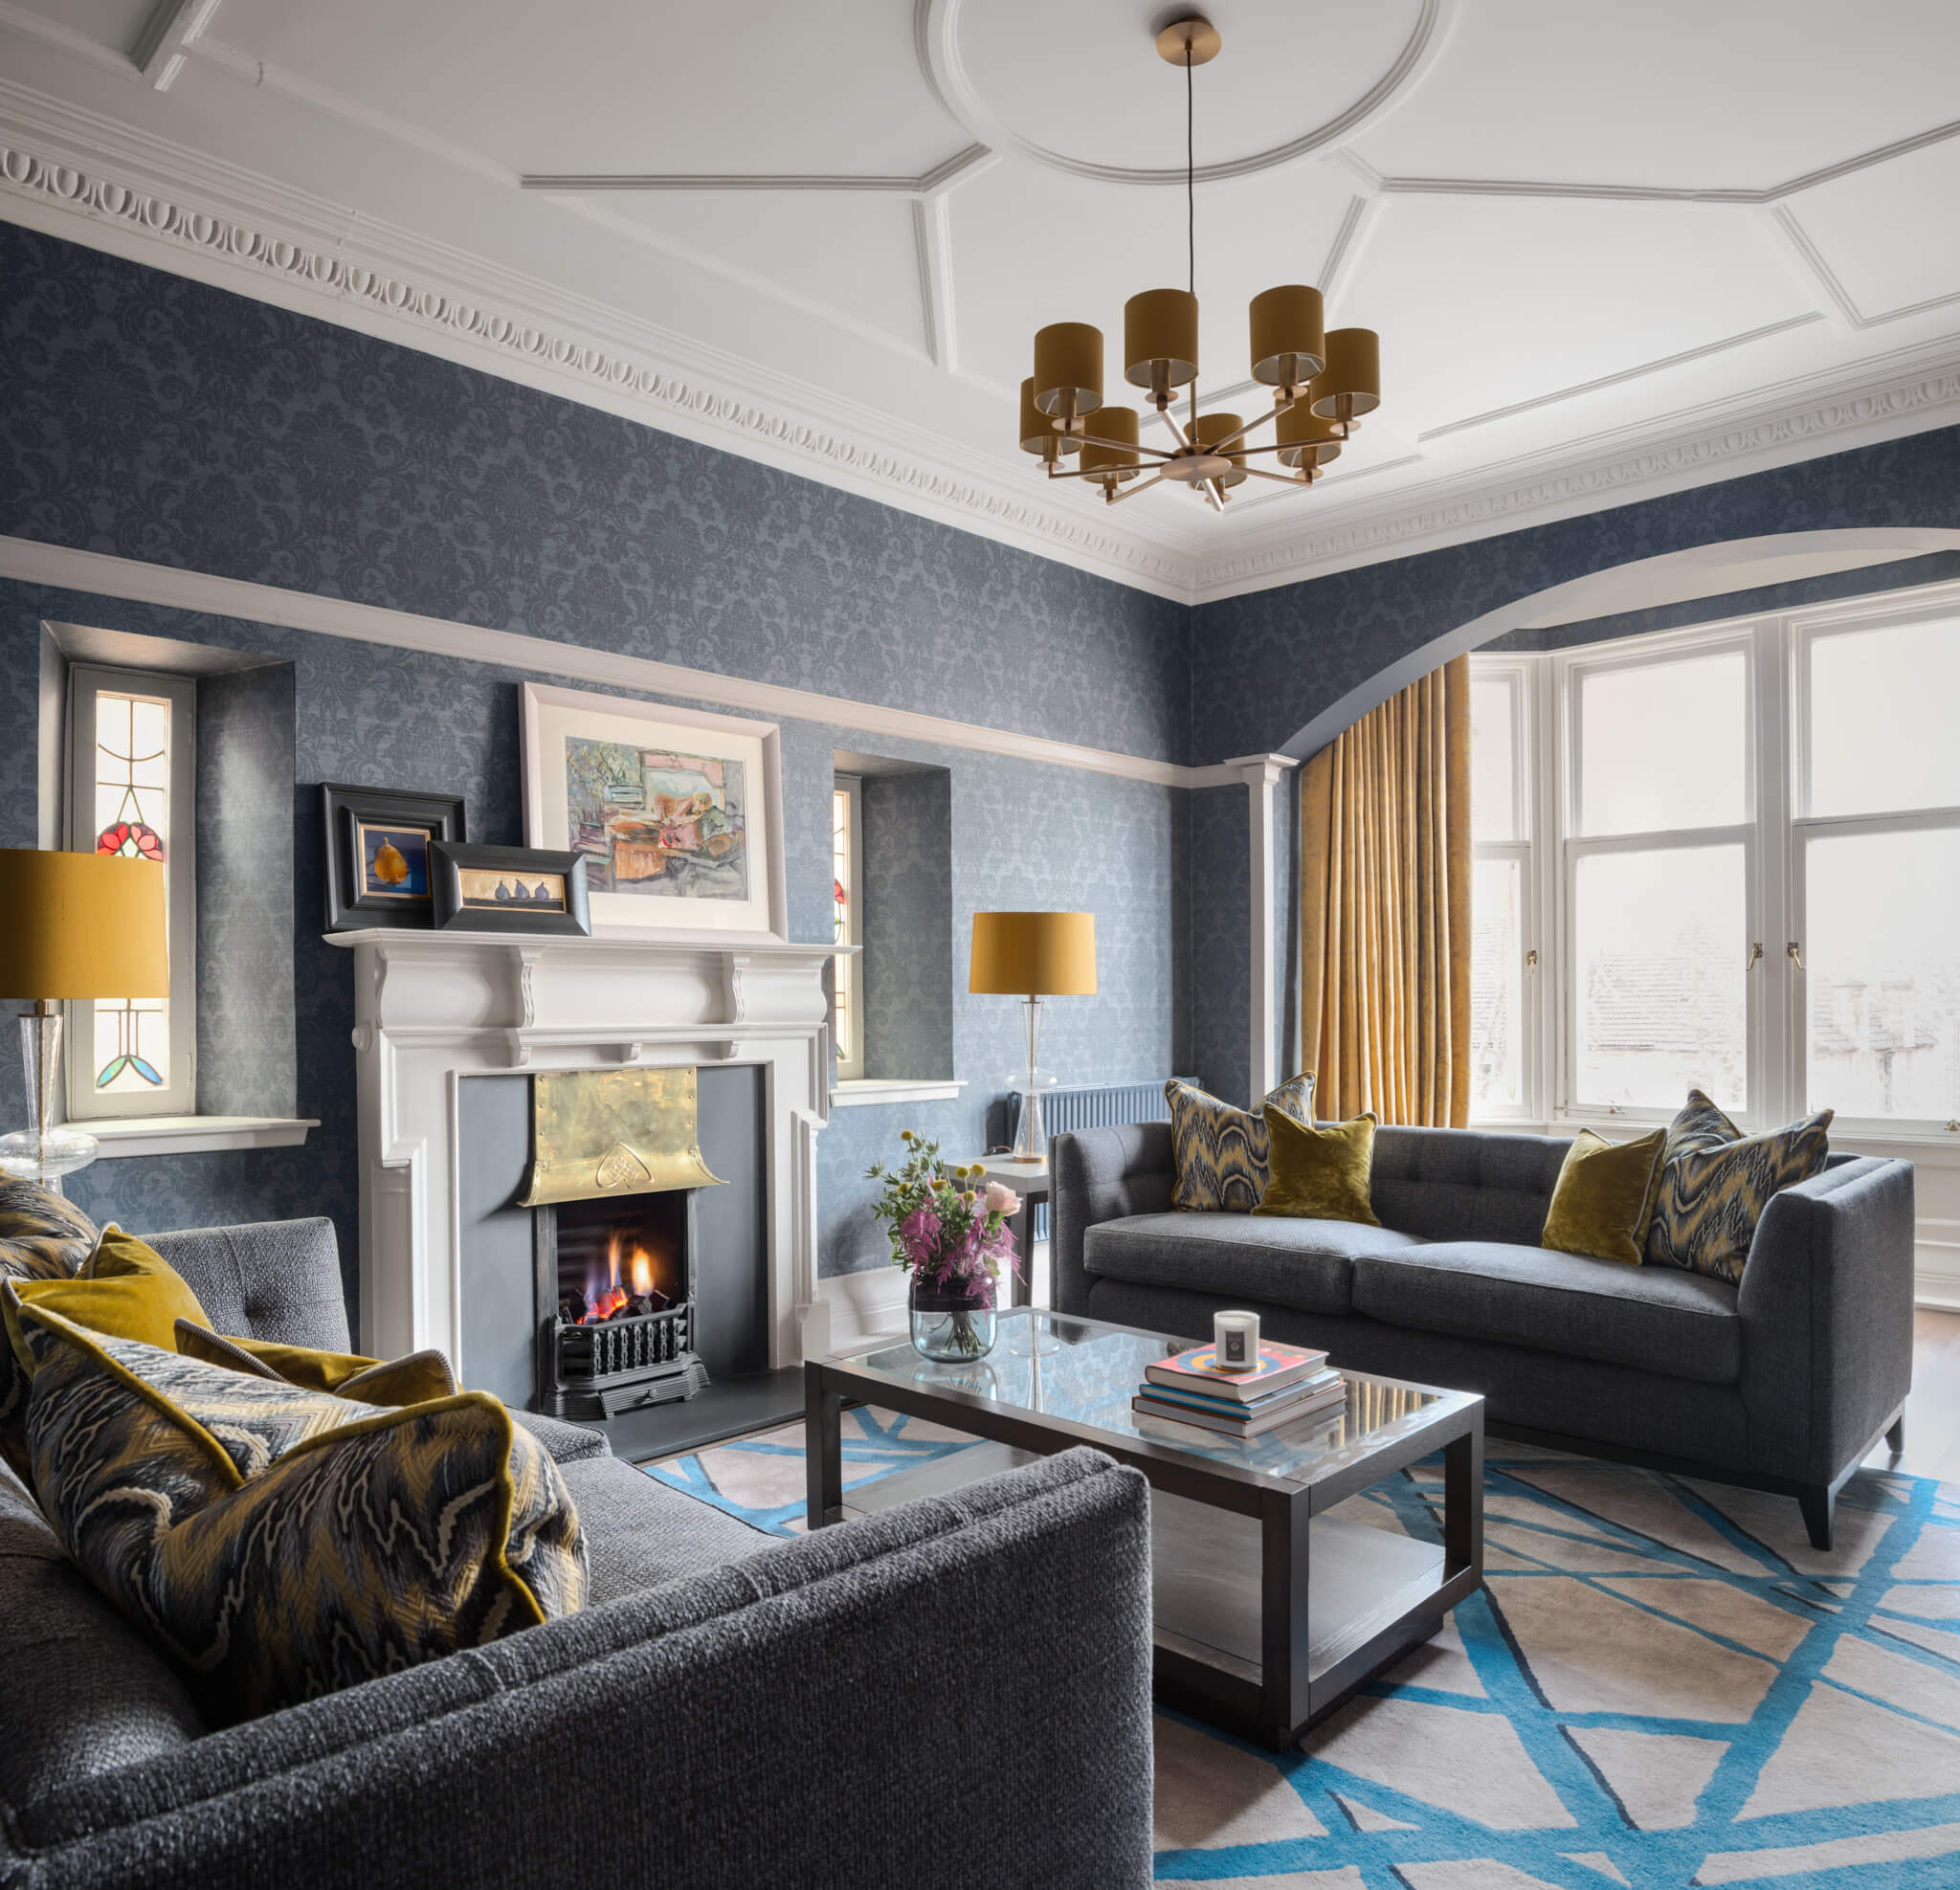 Print-Drawing-Room-Overview-Stich-Chelsea-Mclaine-Interiors-Introductory-Shoot-©ZACandZAC